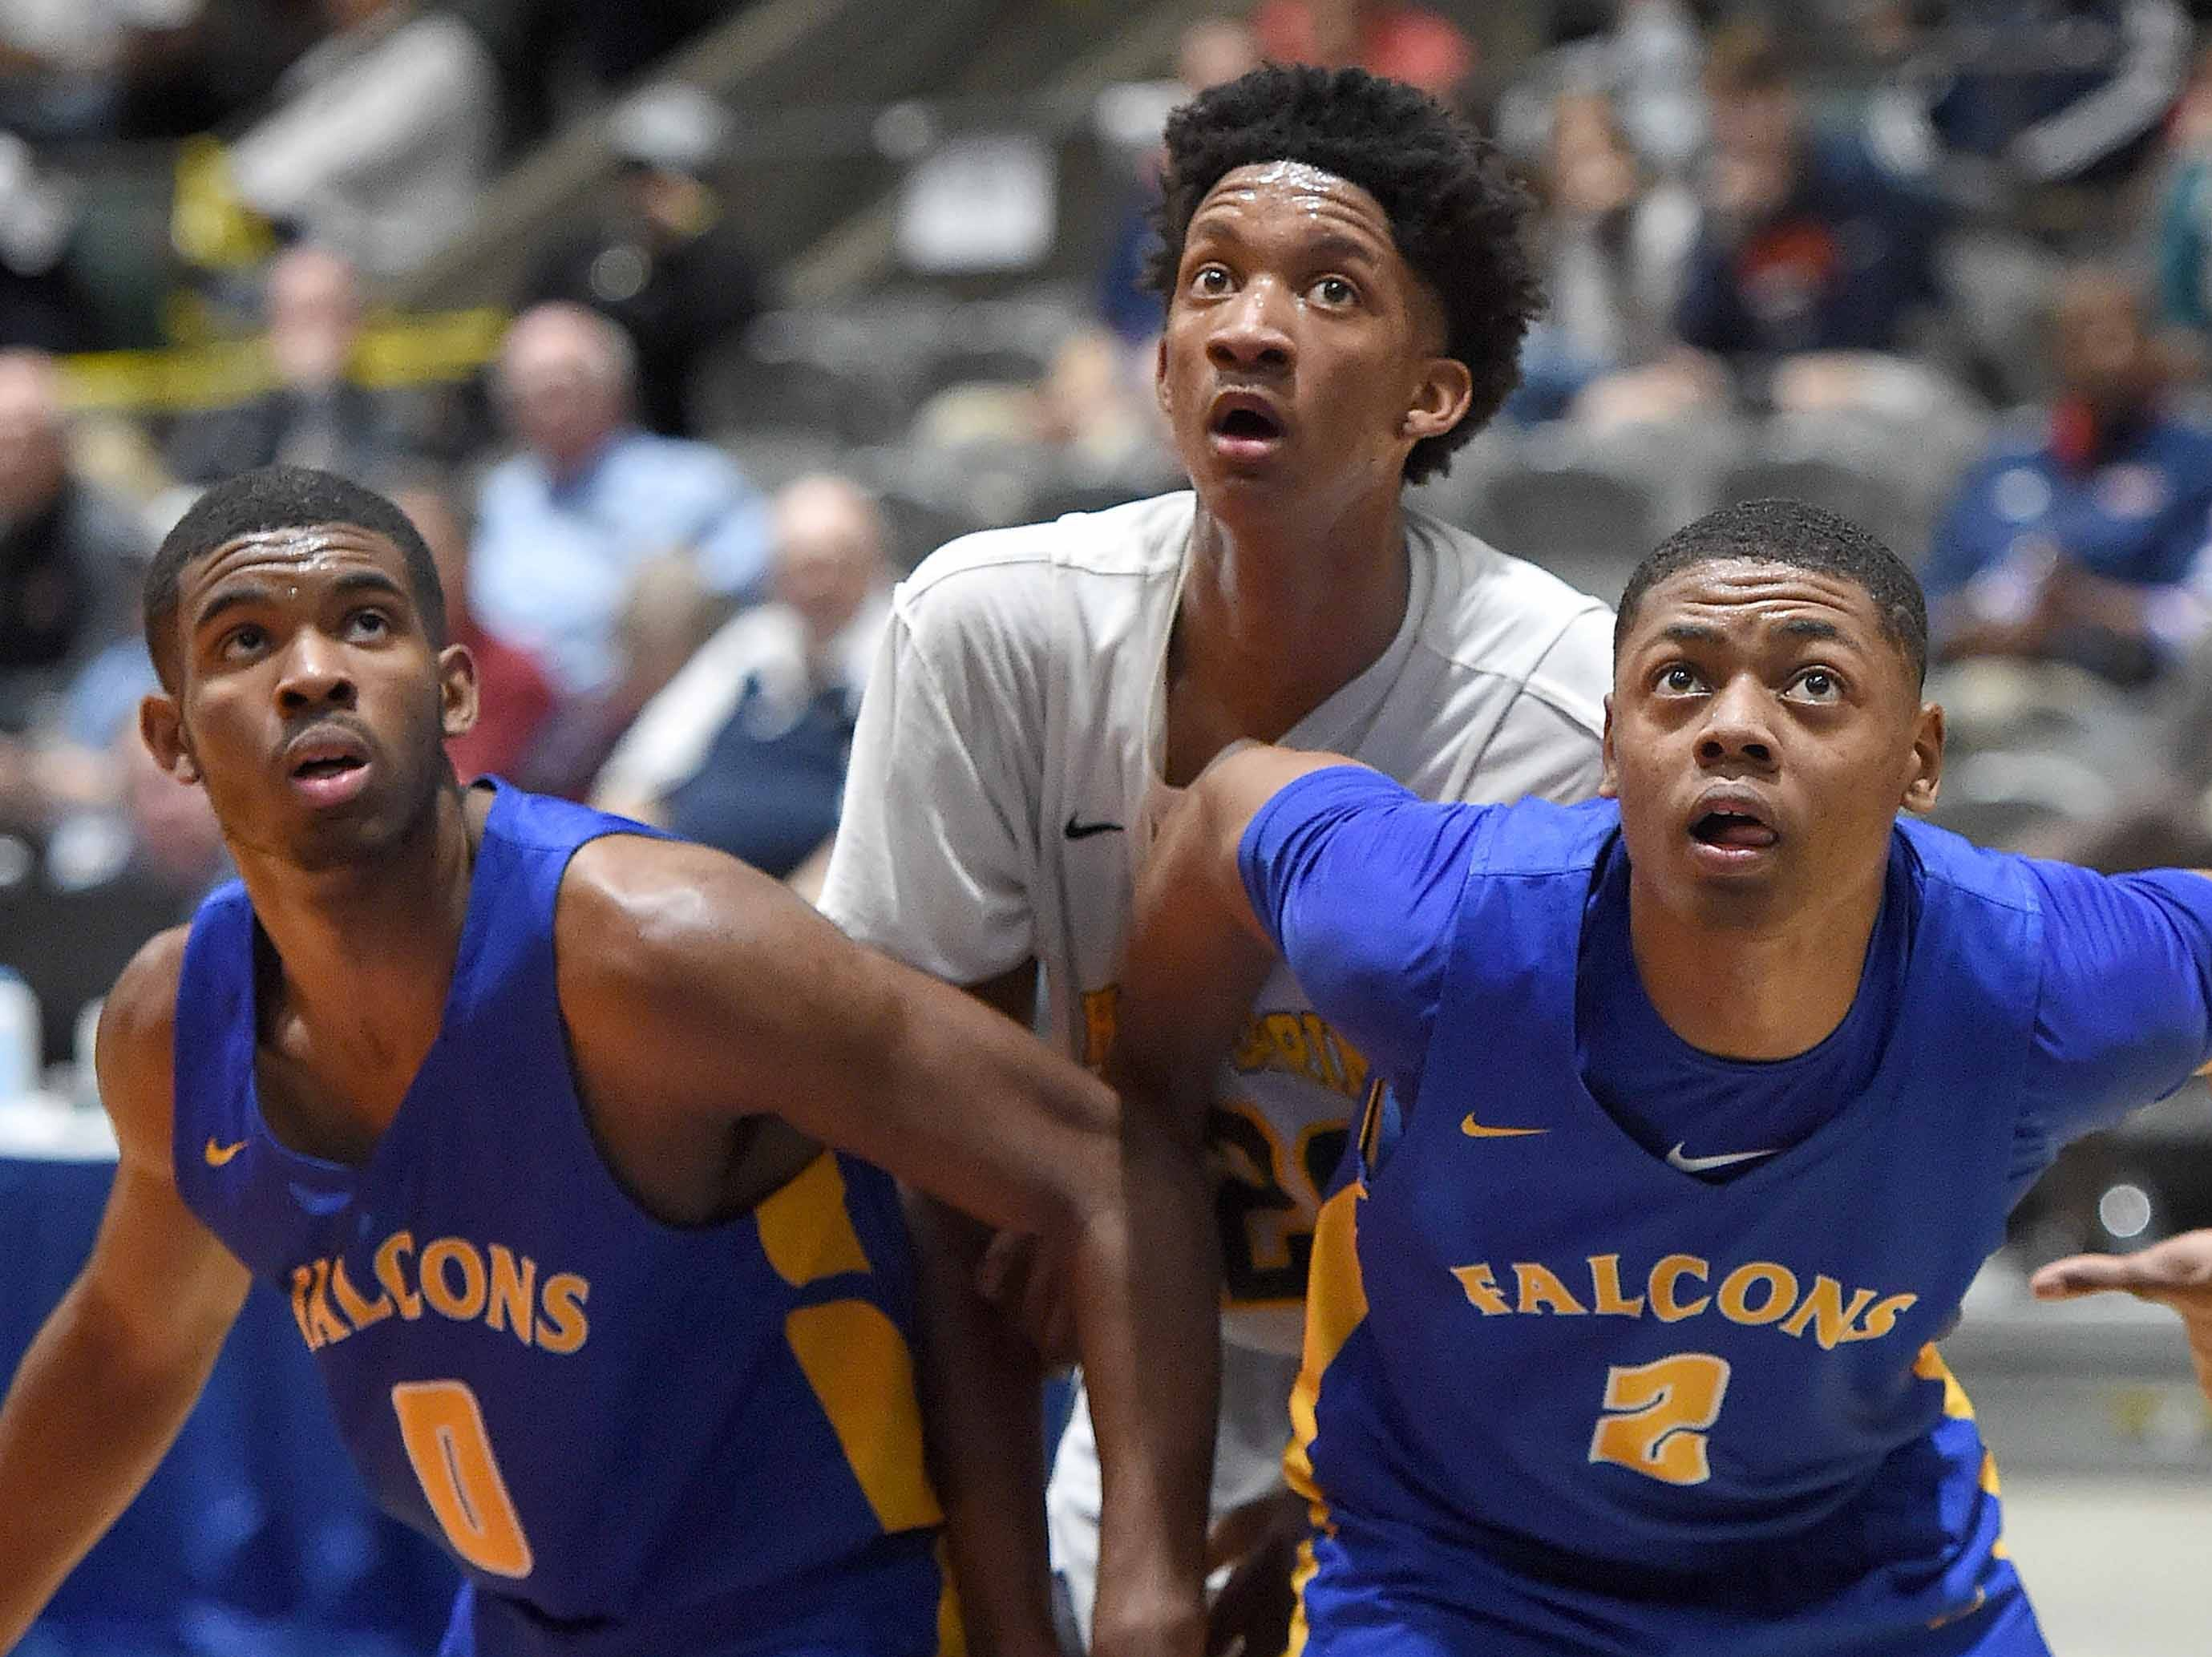 Velma Jackson's Joshua Lee (0) and Jordan Harvey (2) box out Holly Springs' Derke Fountain for a rebound in the finals of the MHSAA C Spire State Basketball Championships at the Mississippi Coliseum in Jackson, Miss., on Saturday, March 9, 2019.